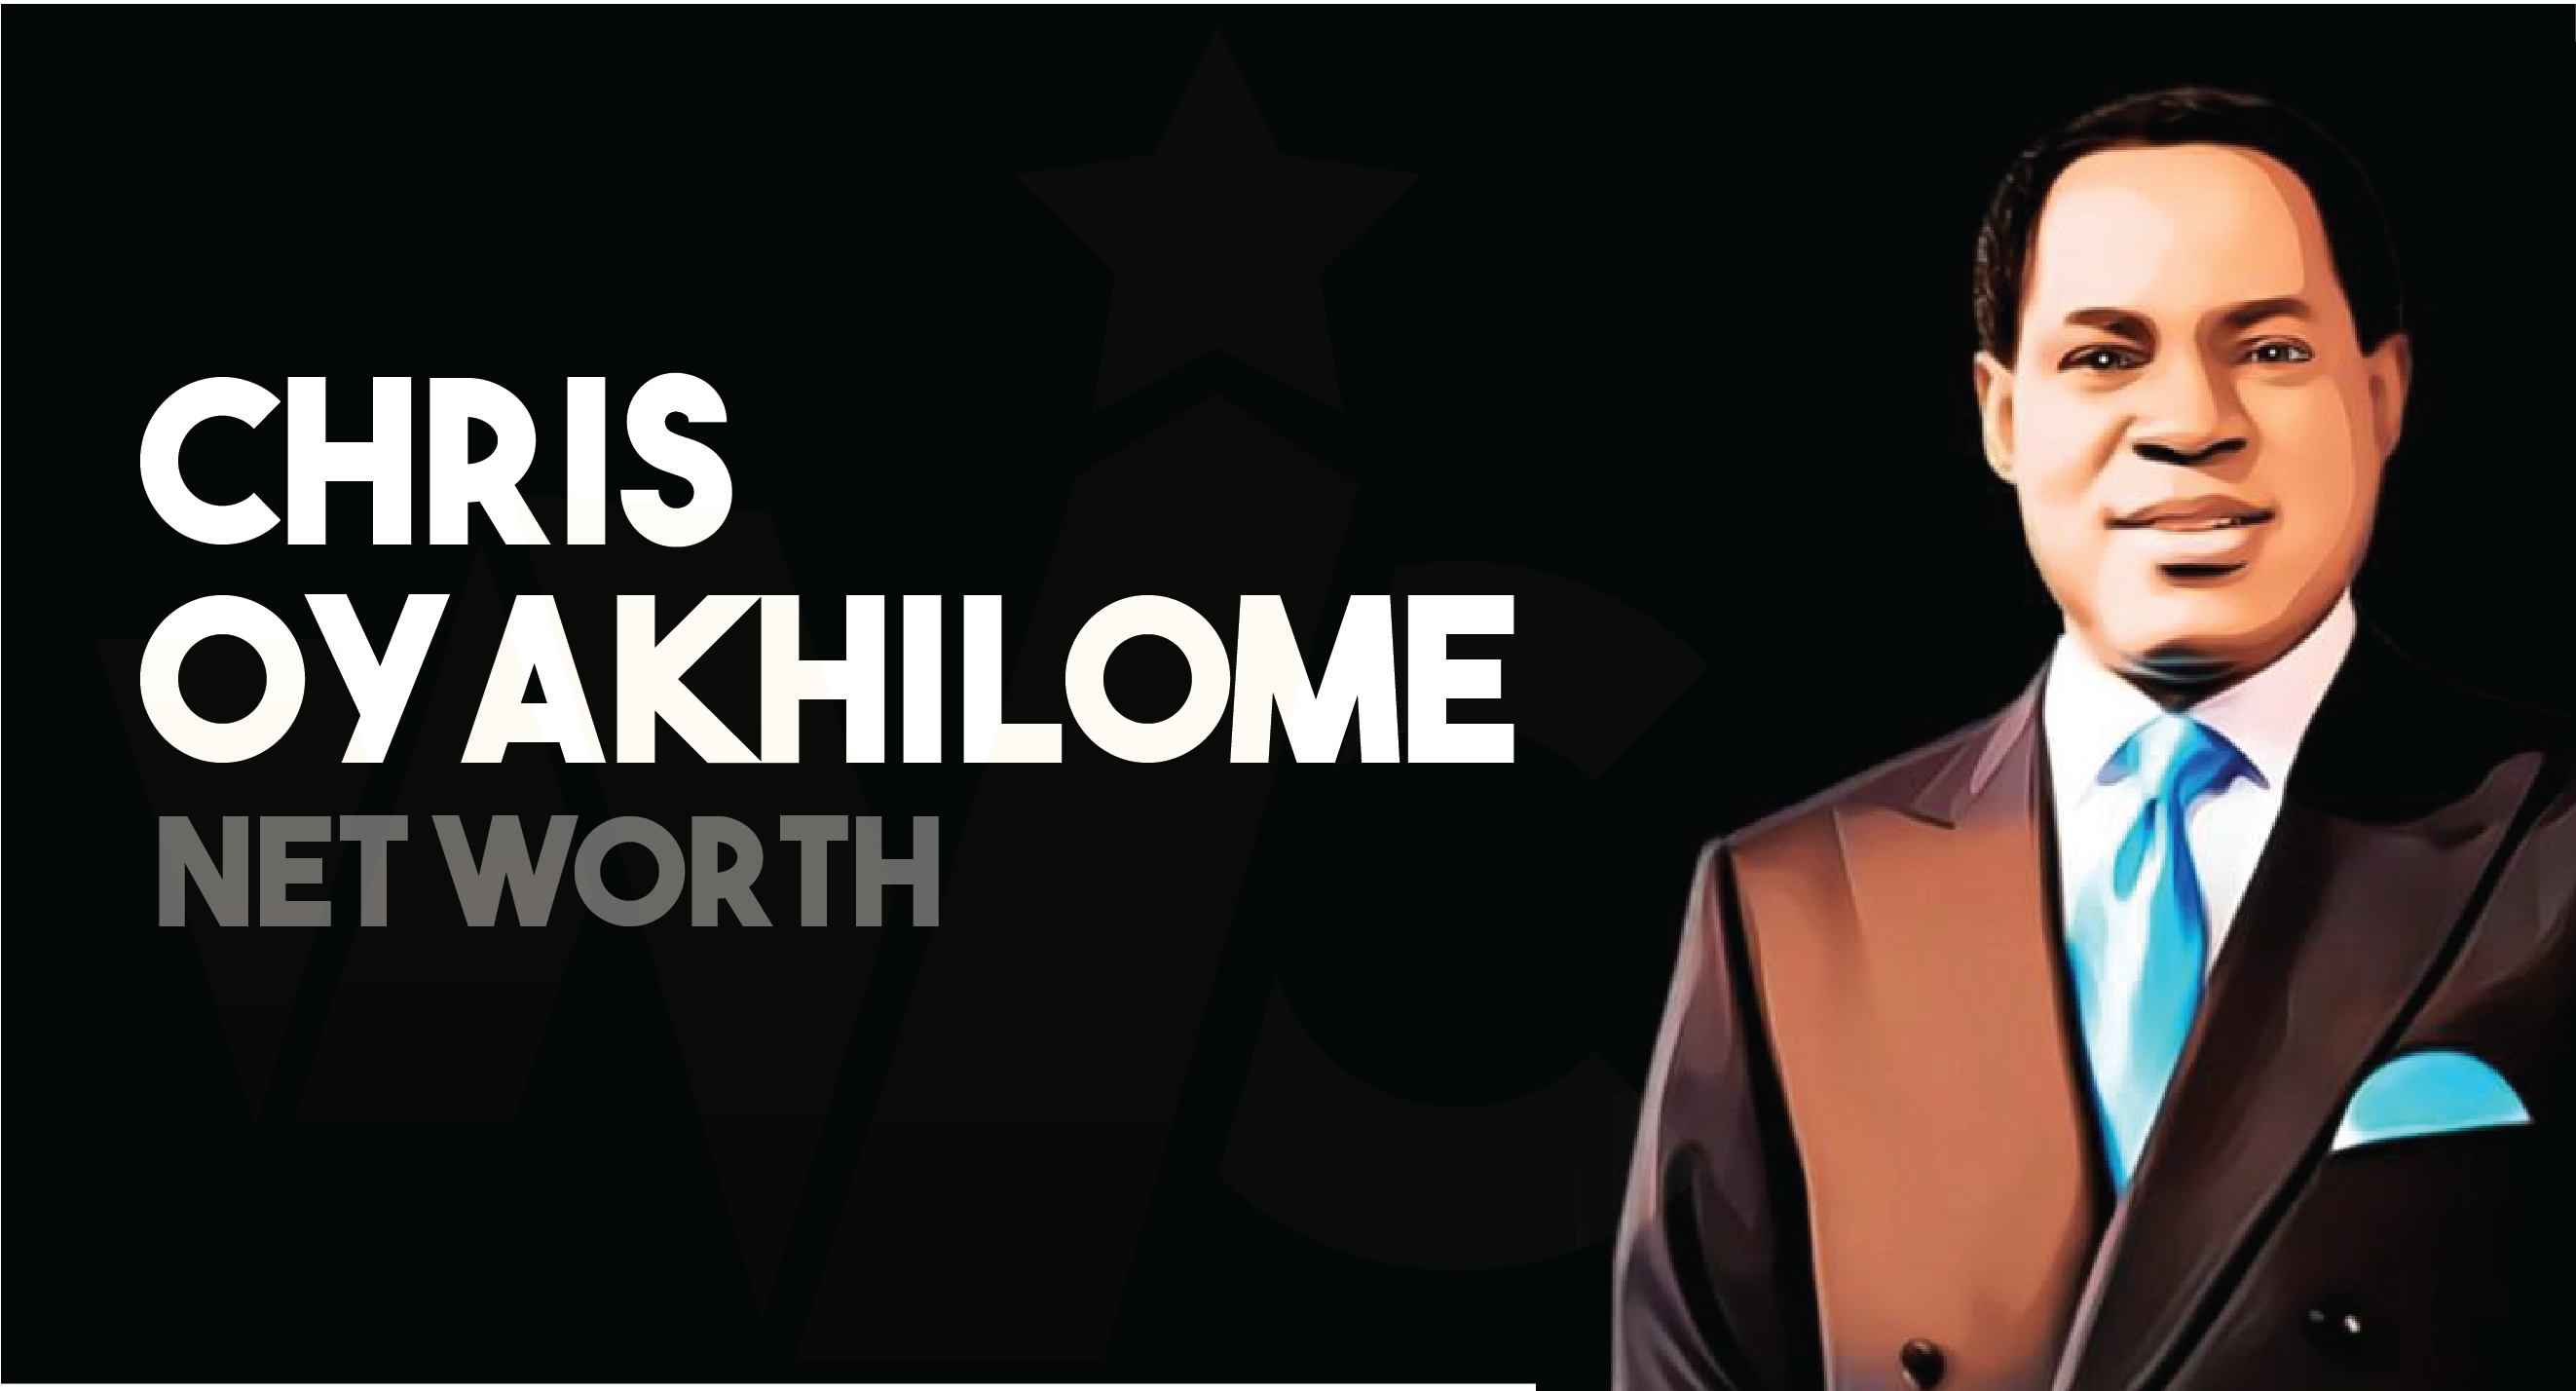 Chris Oyakhilome - Net worth